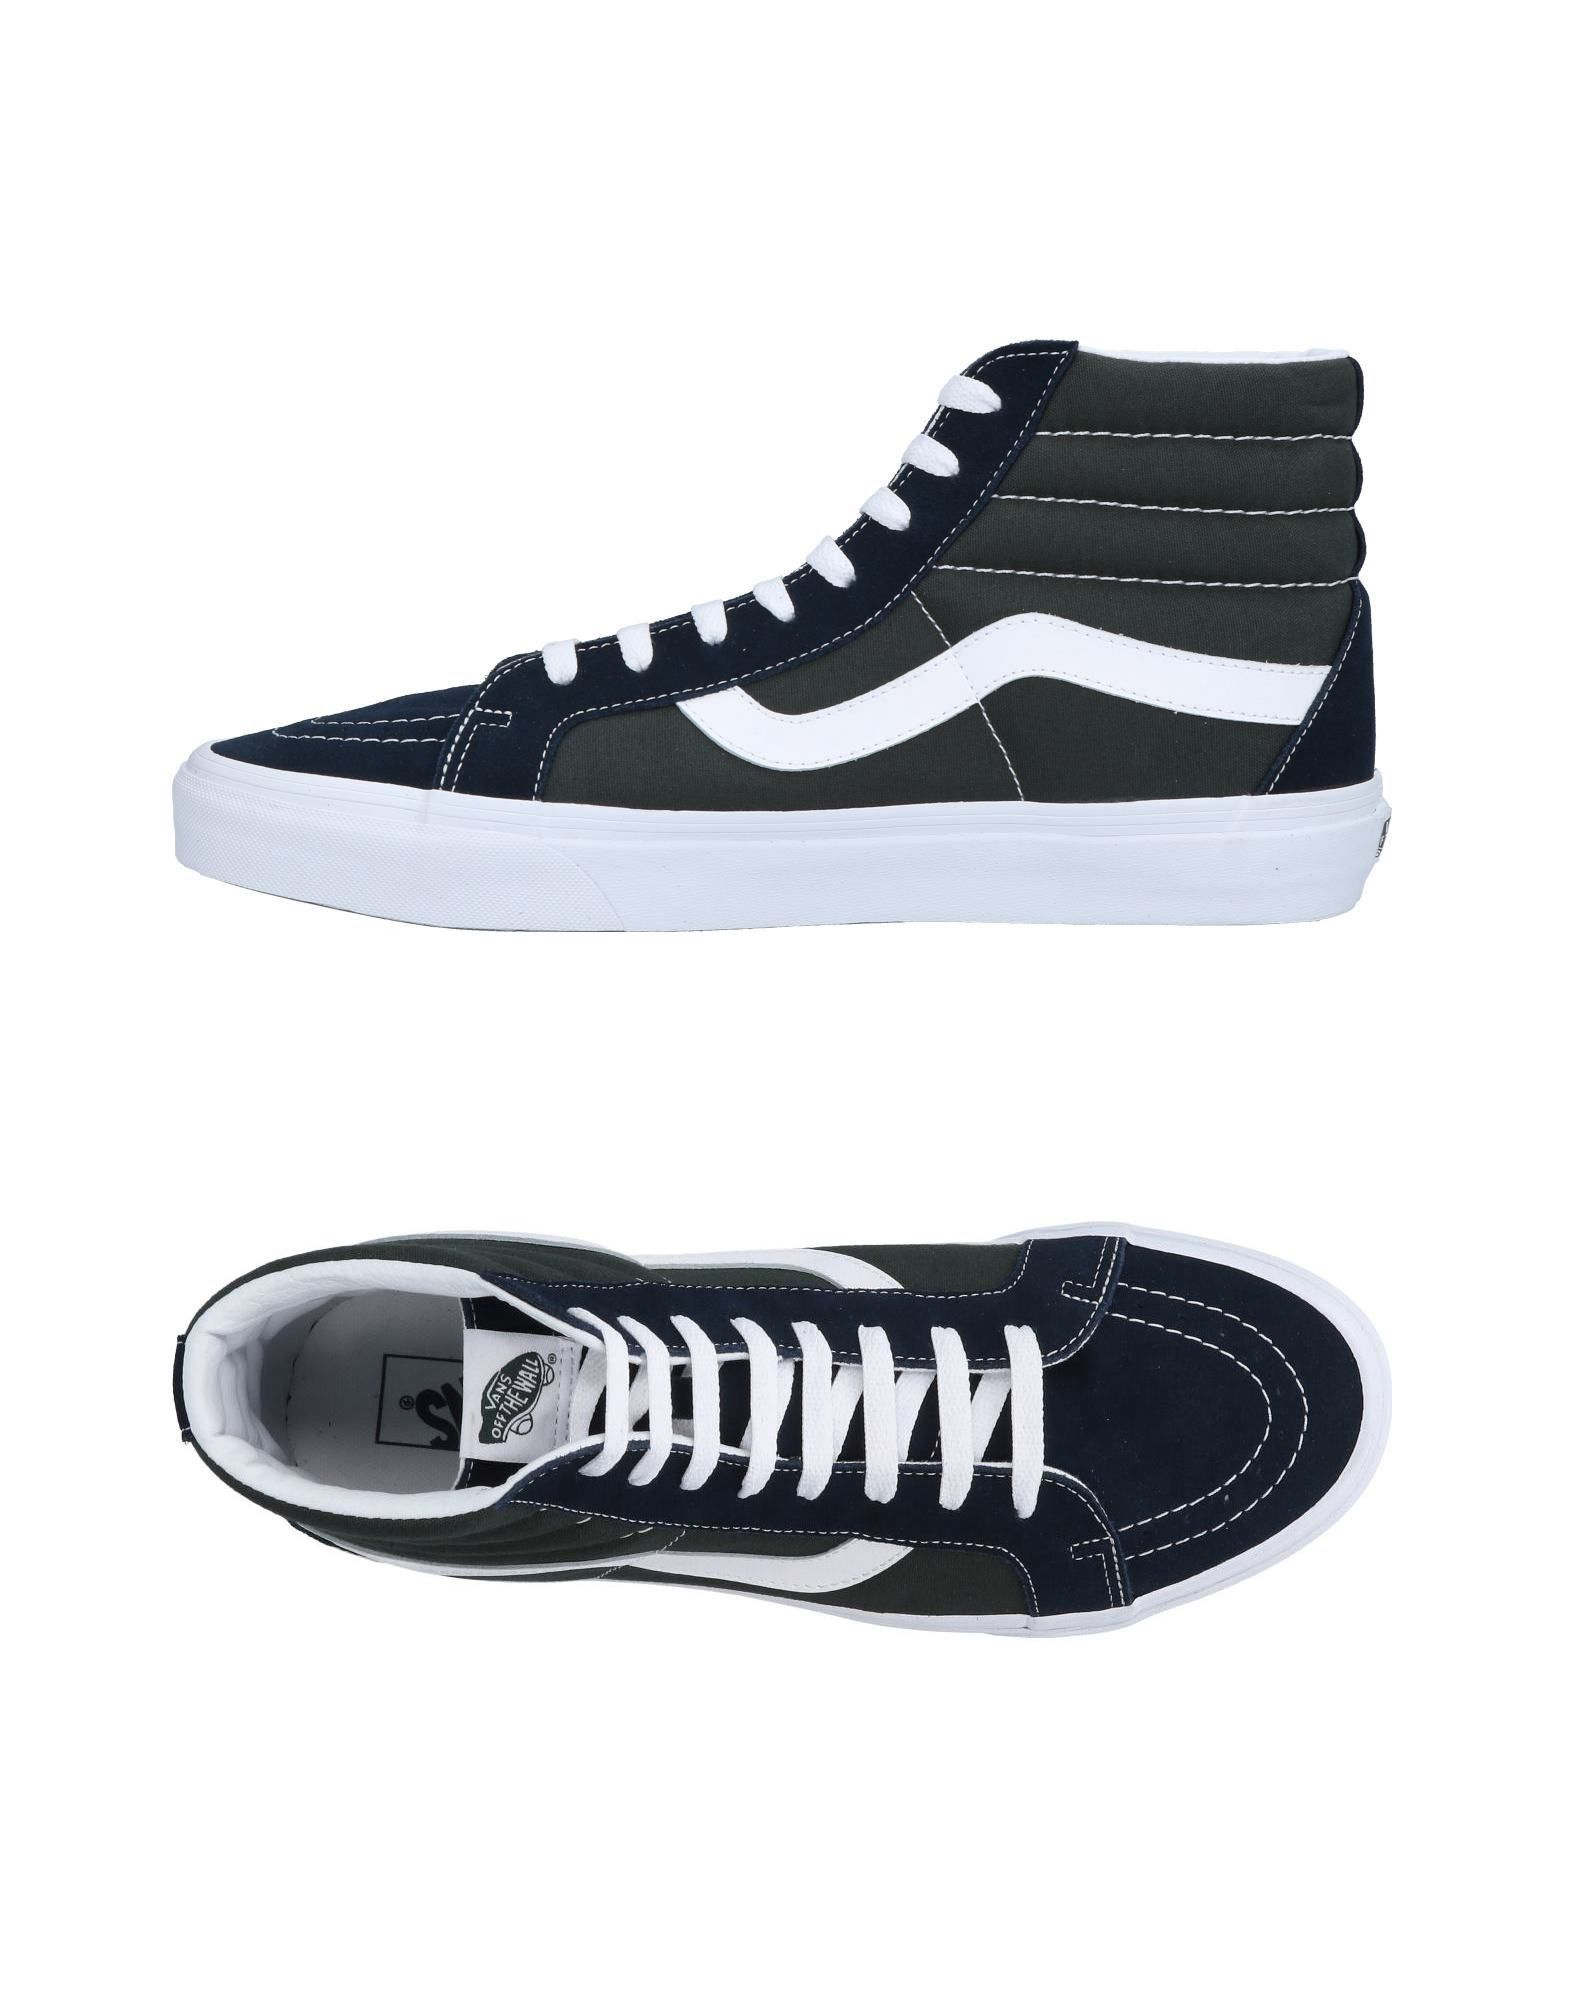 Vans Sneakers - Men Vans Sneakers online on    United Kingdom - 11492574TG 38f532